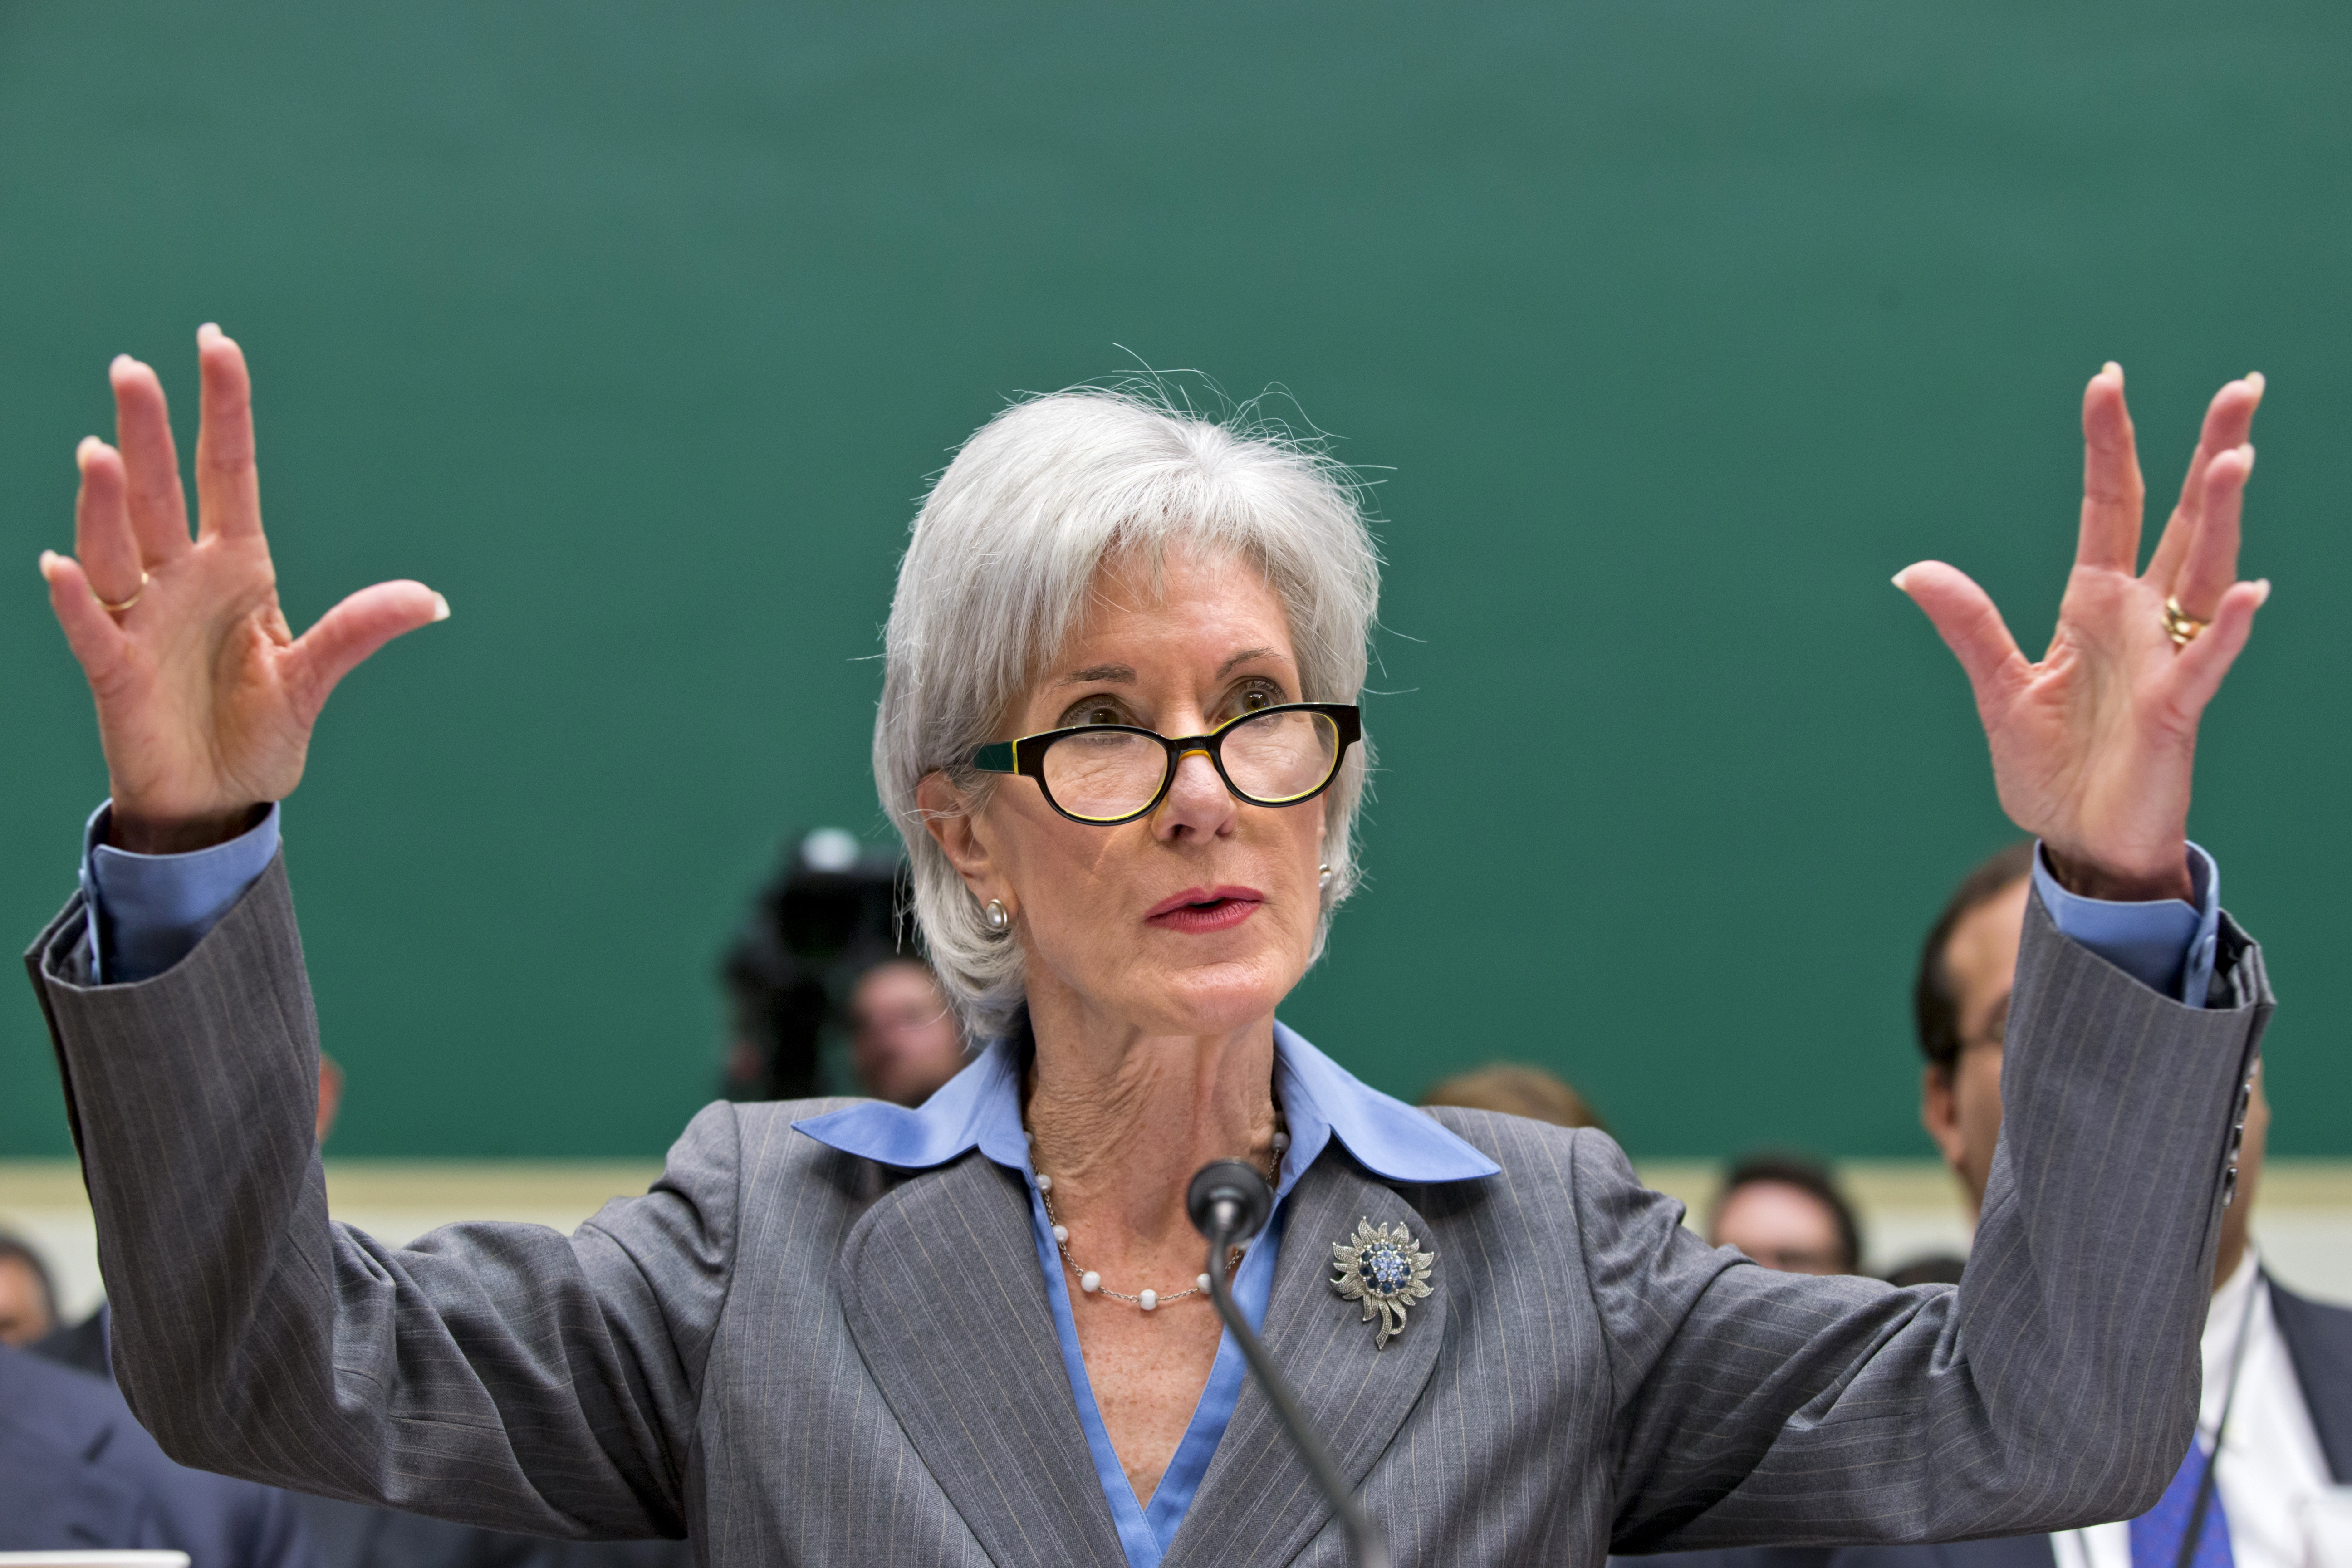 Speaking of the bungled health care website, Health and Human Services Secretary Kathleen Sebelius told Congress: 'Hold me accountable for the debacle. I'm responsible.'